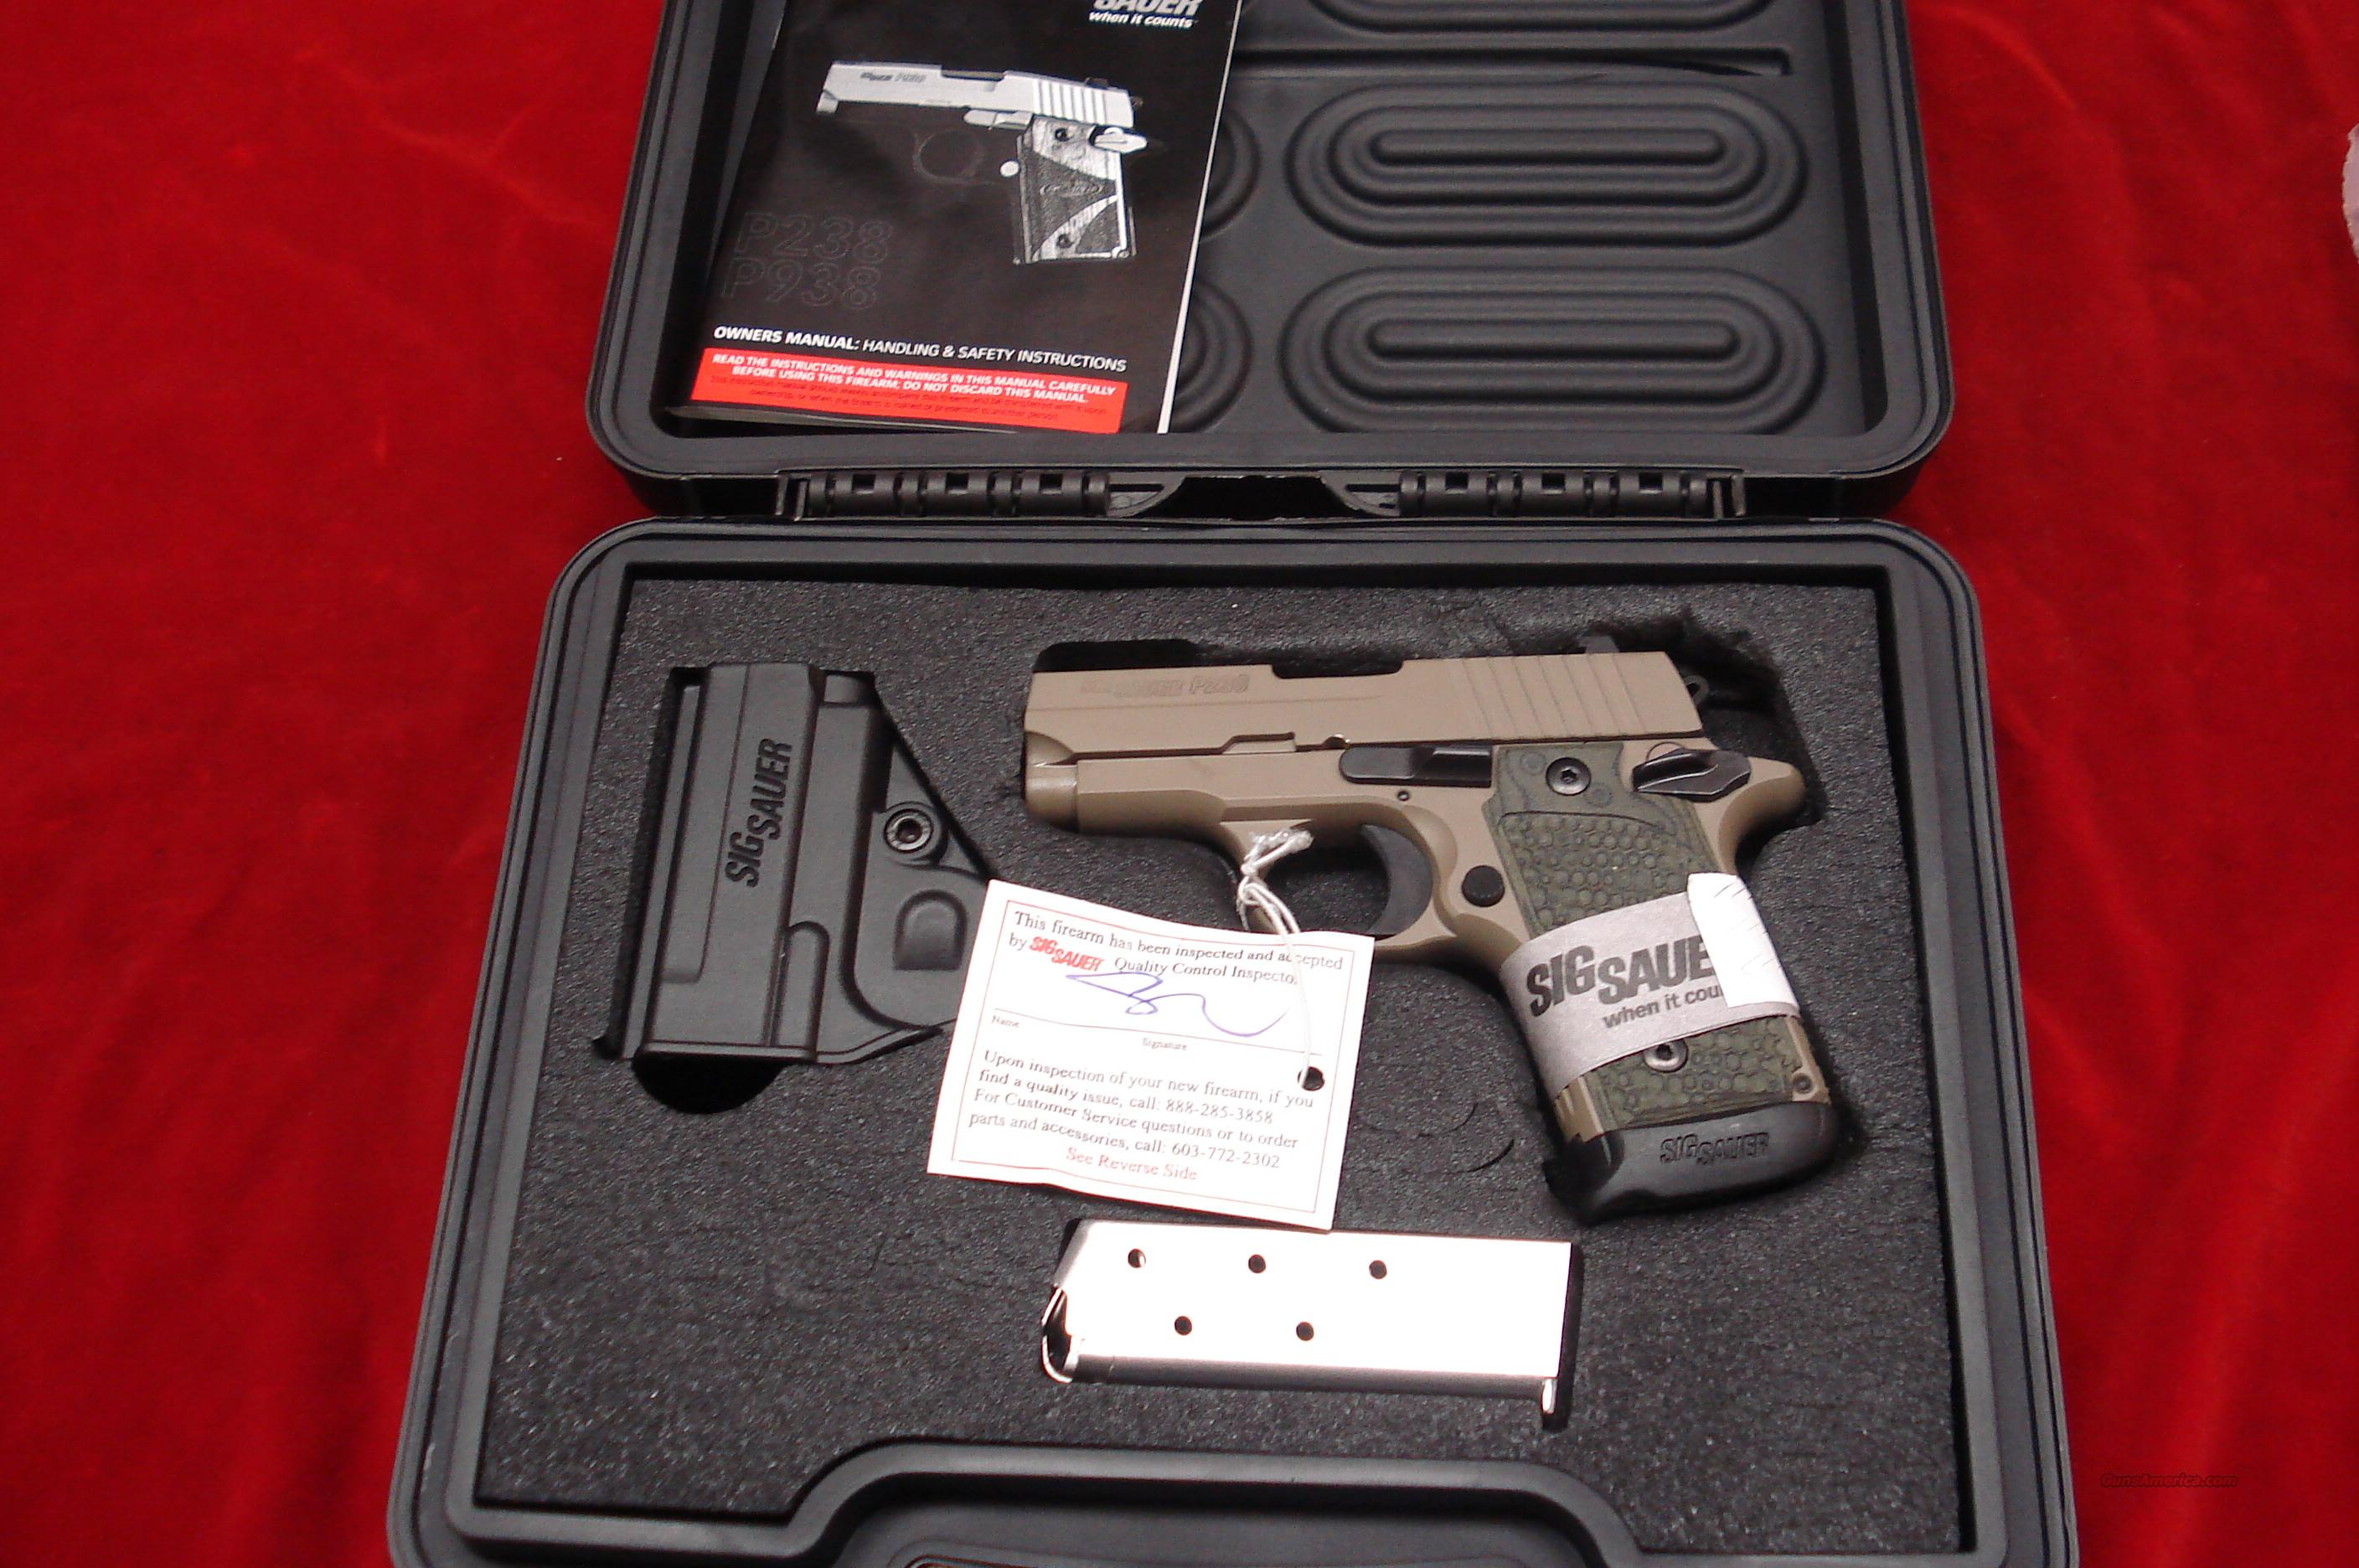 SIG SAUER 380CAL.P238 SCORPION FLAT DARK EARTH WITH  NIGHT SIGHTS NEW   (238-380-SCPN)  Guns > Pistols > Sig - Sauer/Sigarms Pistols > Other